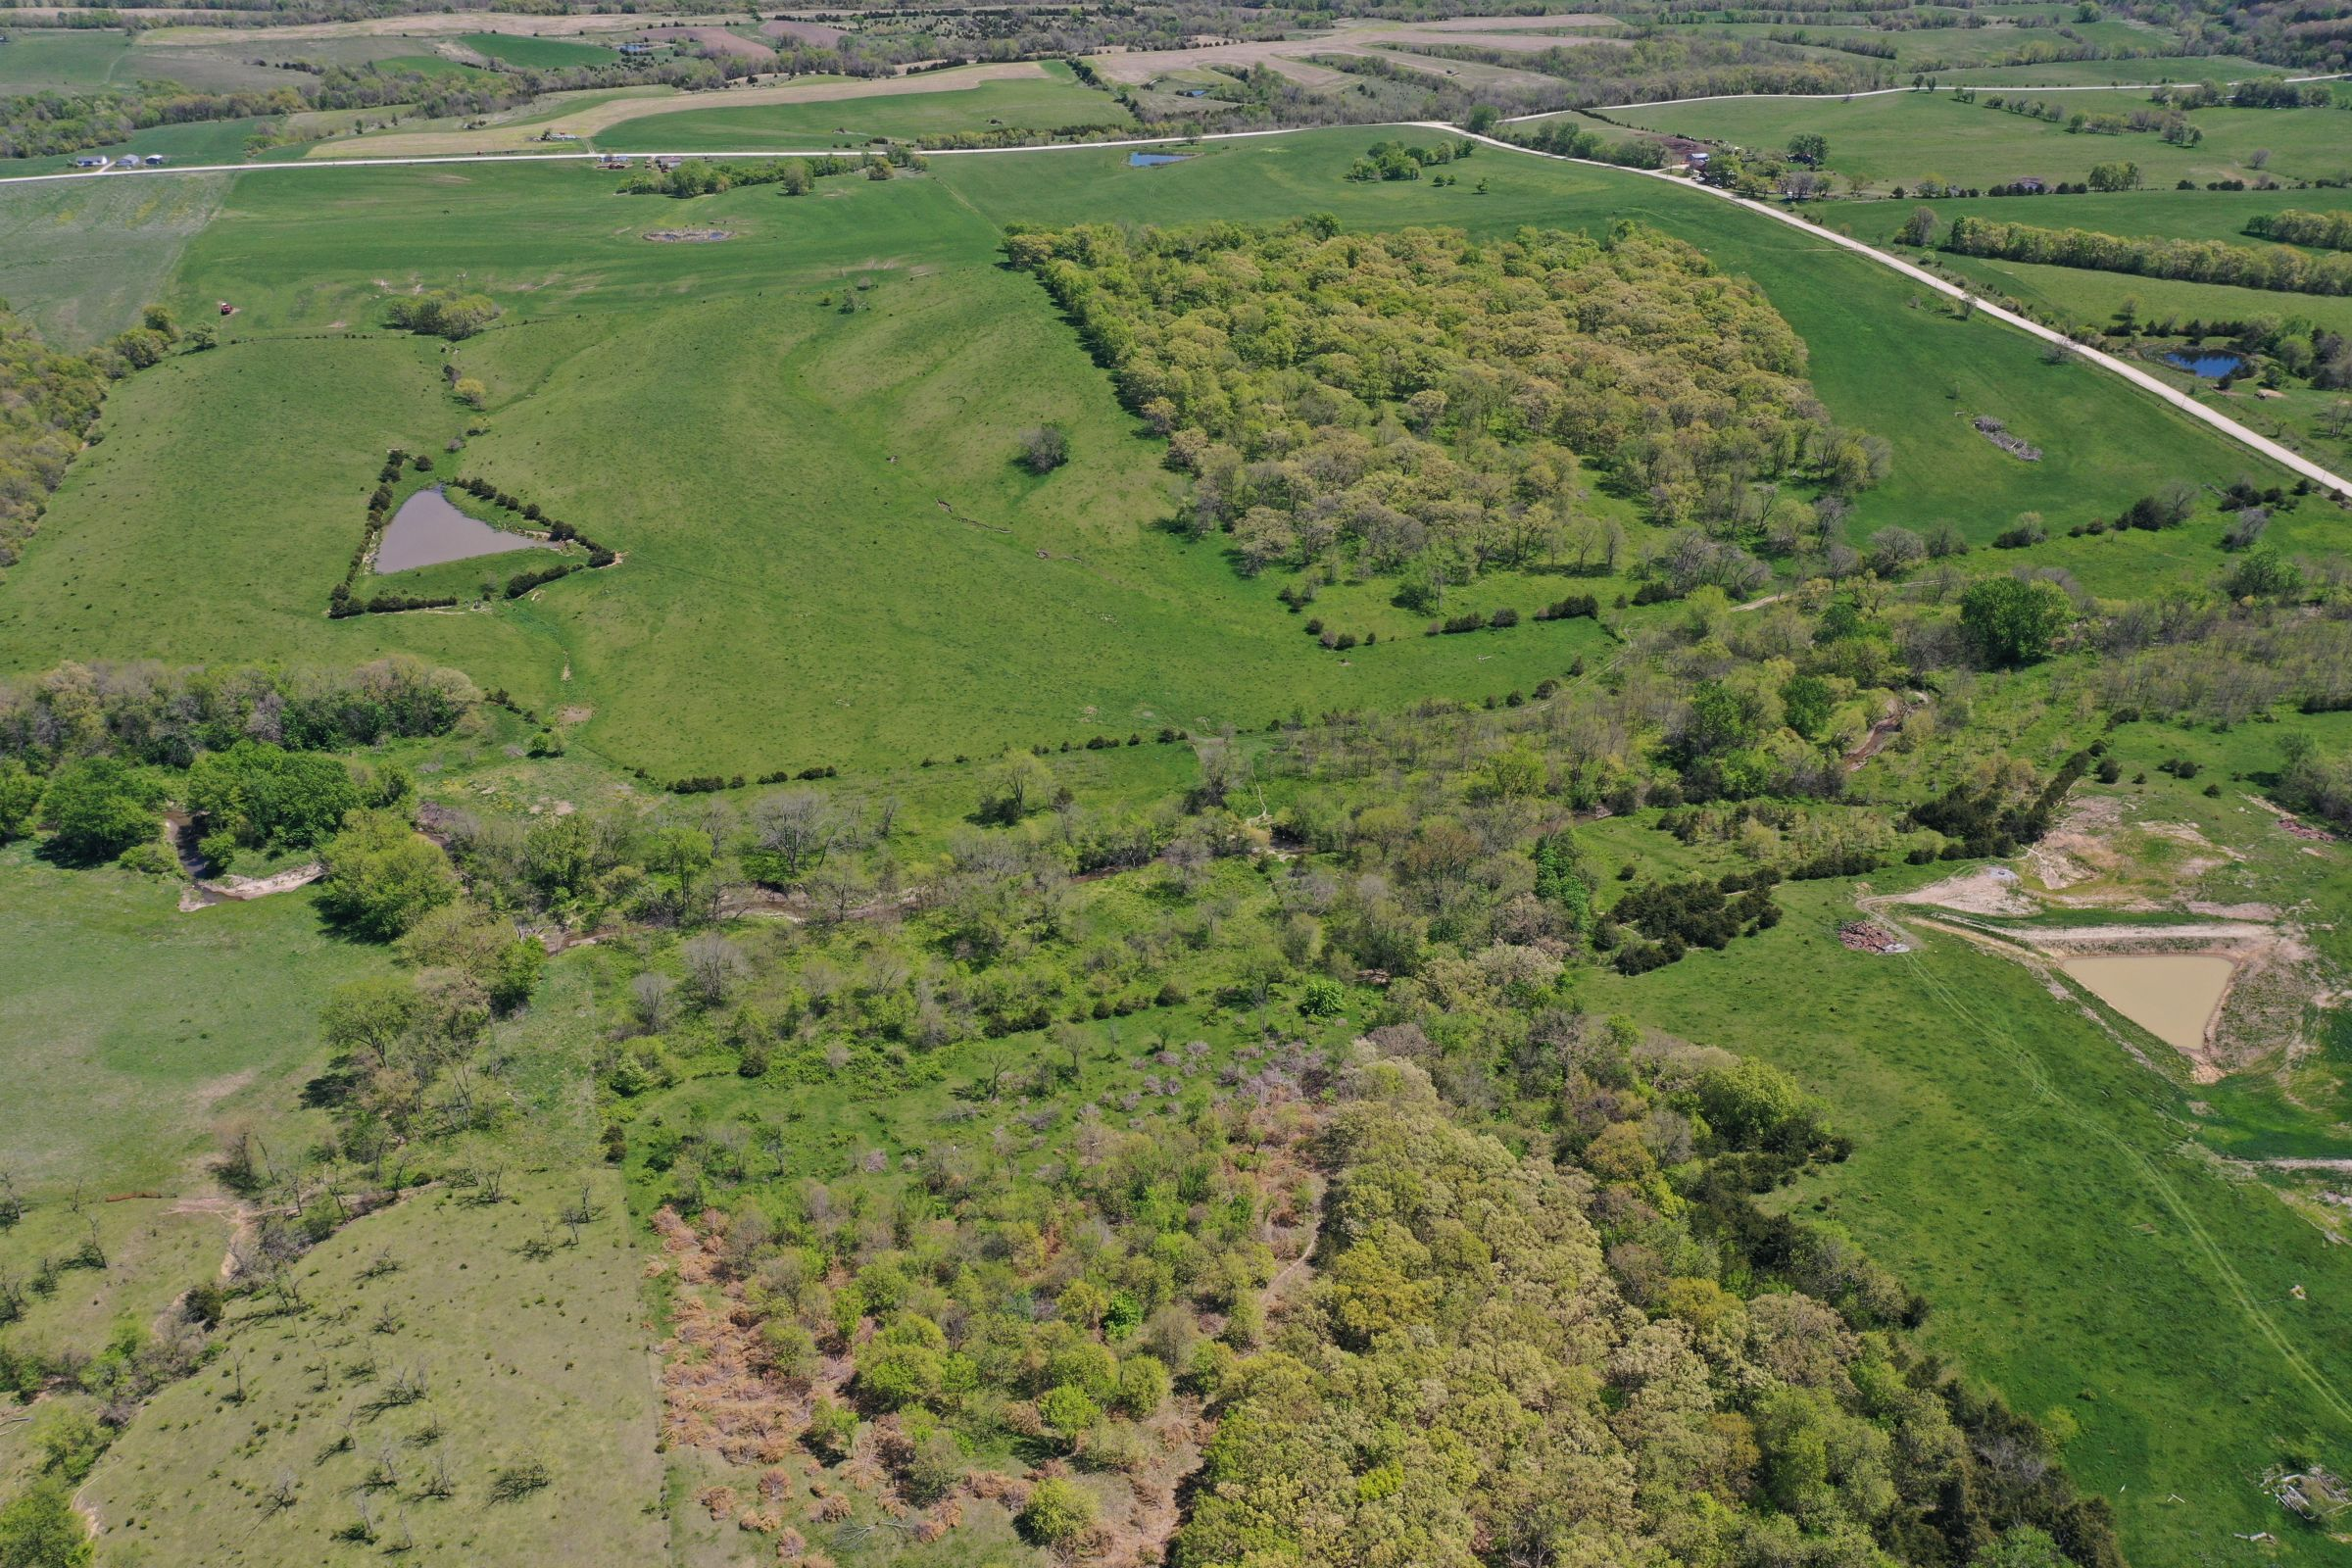 land-decatur-county-iowa-99-acres-listing-number-15525-5-2021-05-14-173514.JPG